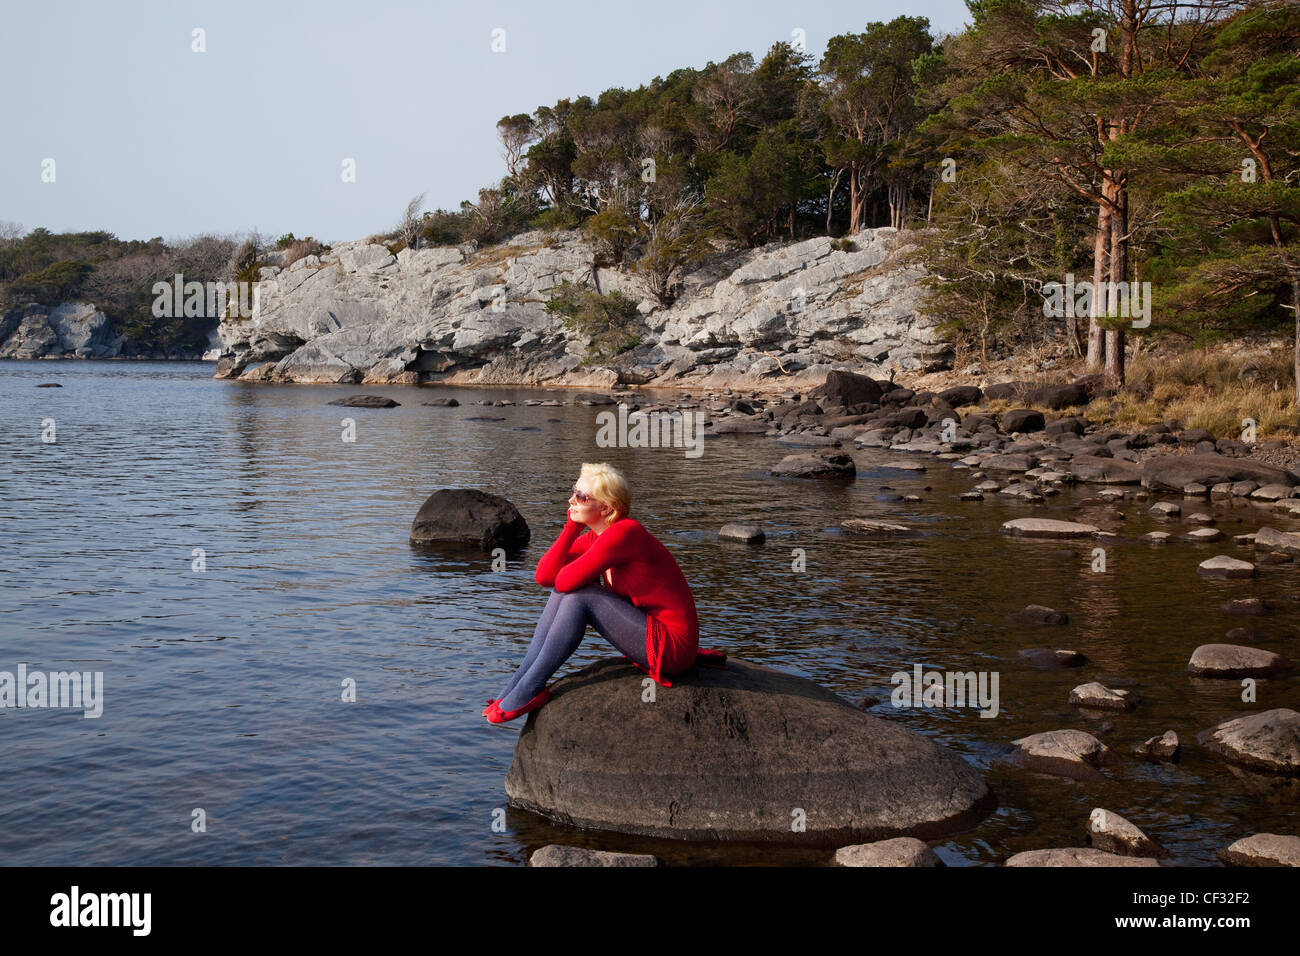 A Young Woman Sits On A Large Rock On Muckross Lake; Killarney County Kerry Ireland - Stock Image